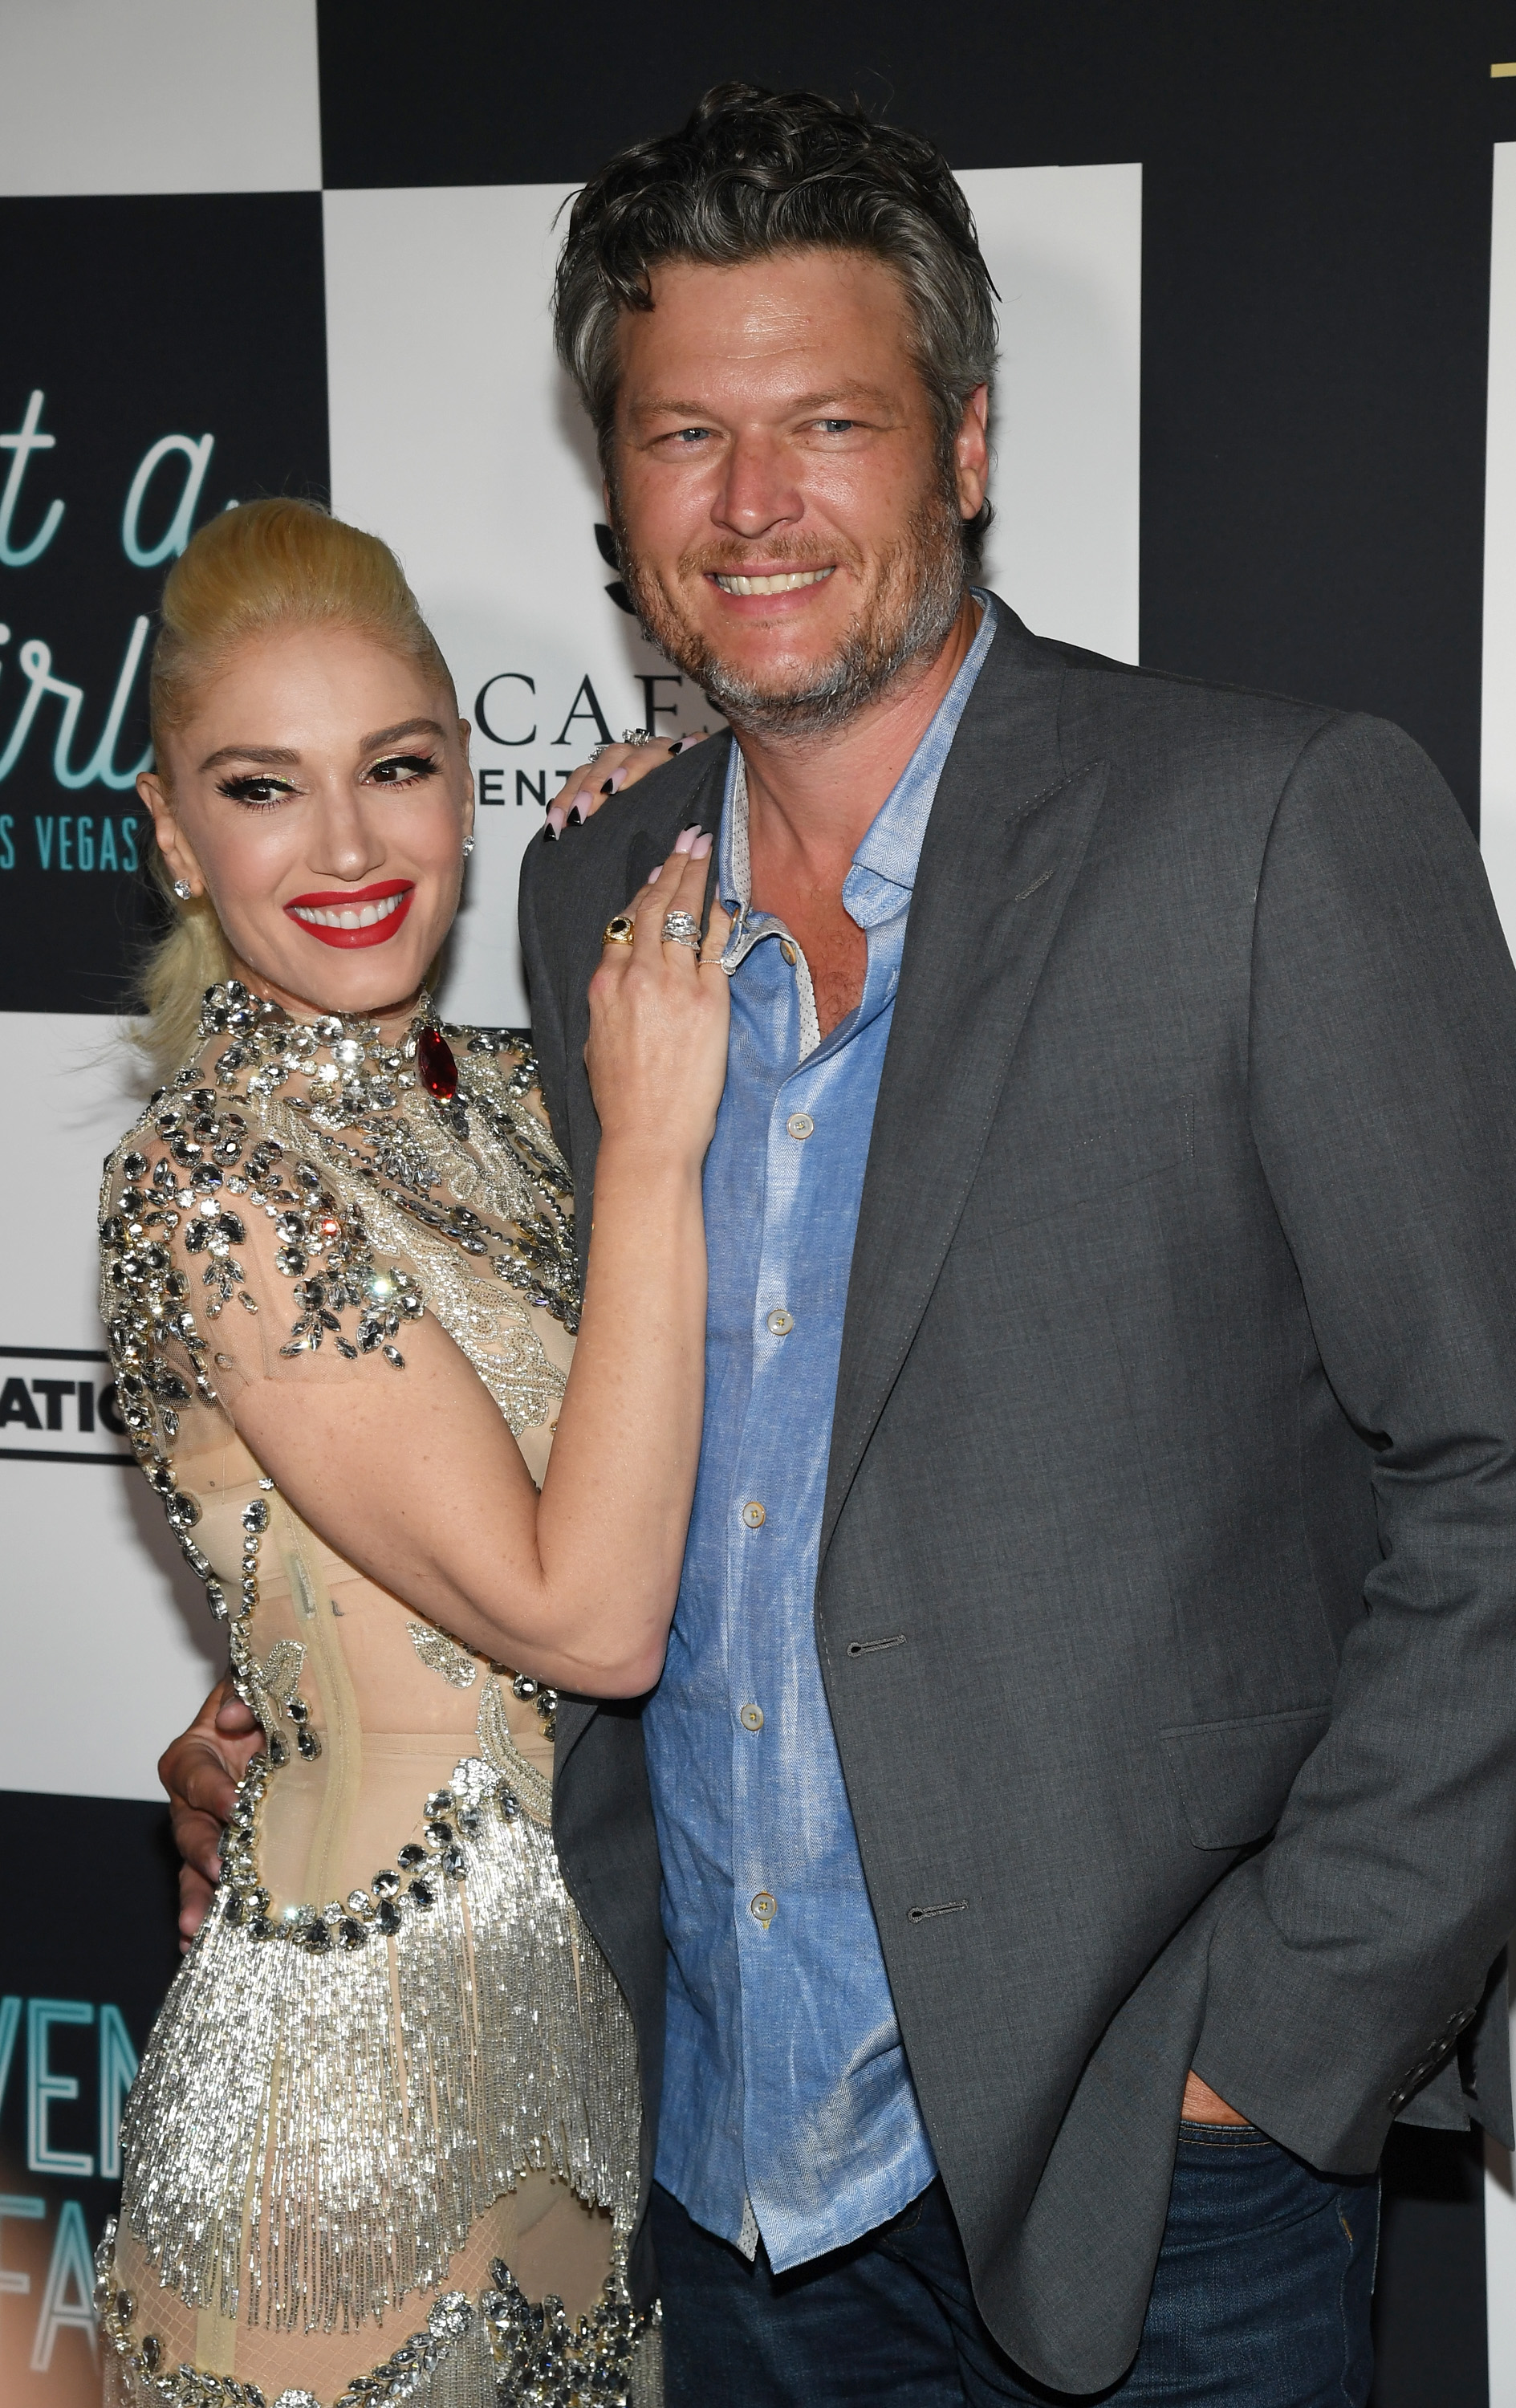 Singer Gwen Stefani and recording artist Blake Shelton attend the grand opening of her 'Gwen Stefani - Just a Girl' residency at Planet Hollywood Resort & Casino on June 28, 2018 in Las Vegas, Nevada. (Photo by Ethan Miller/Getty Images)